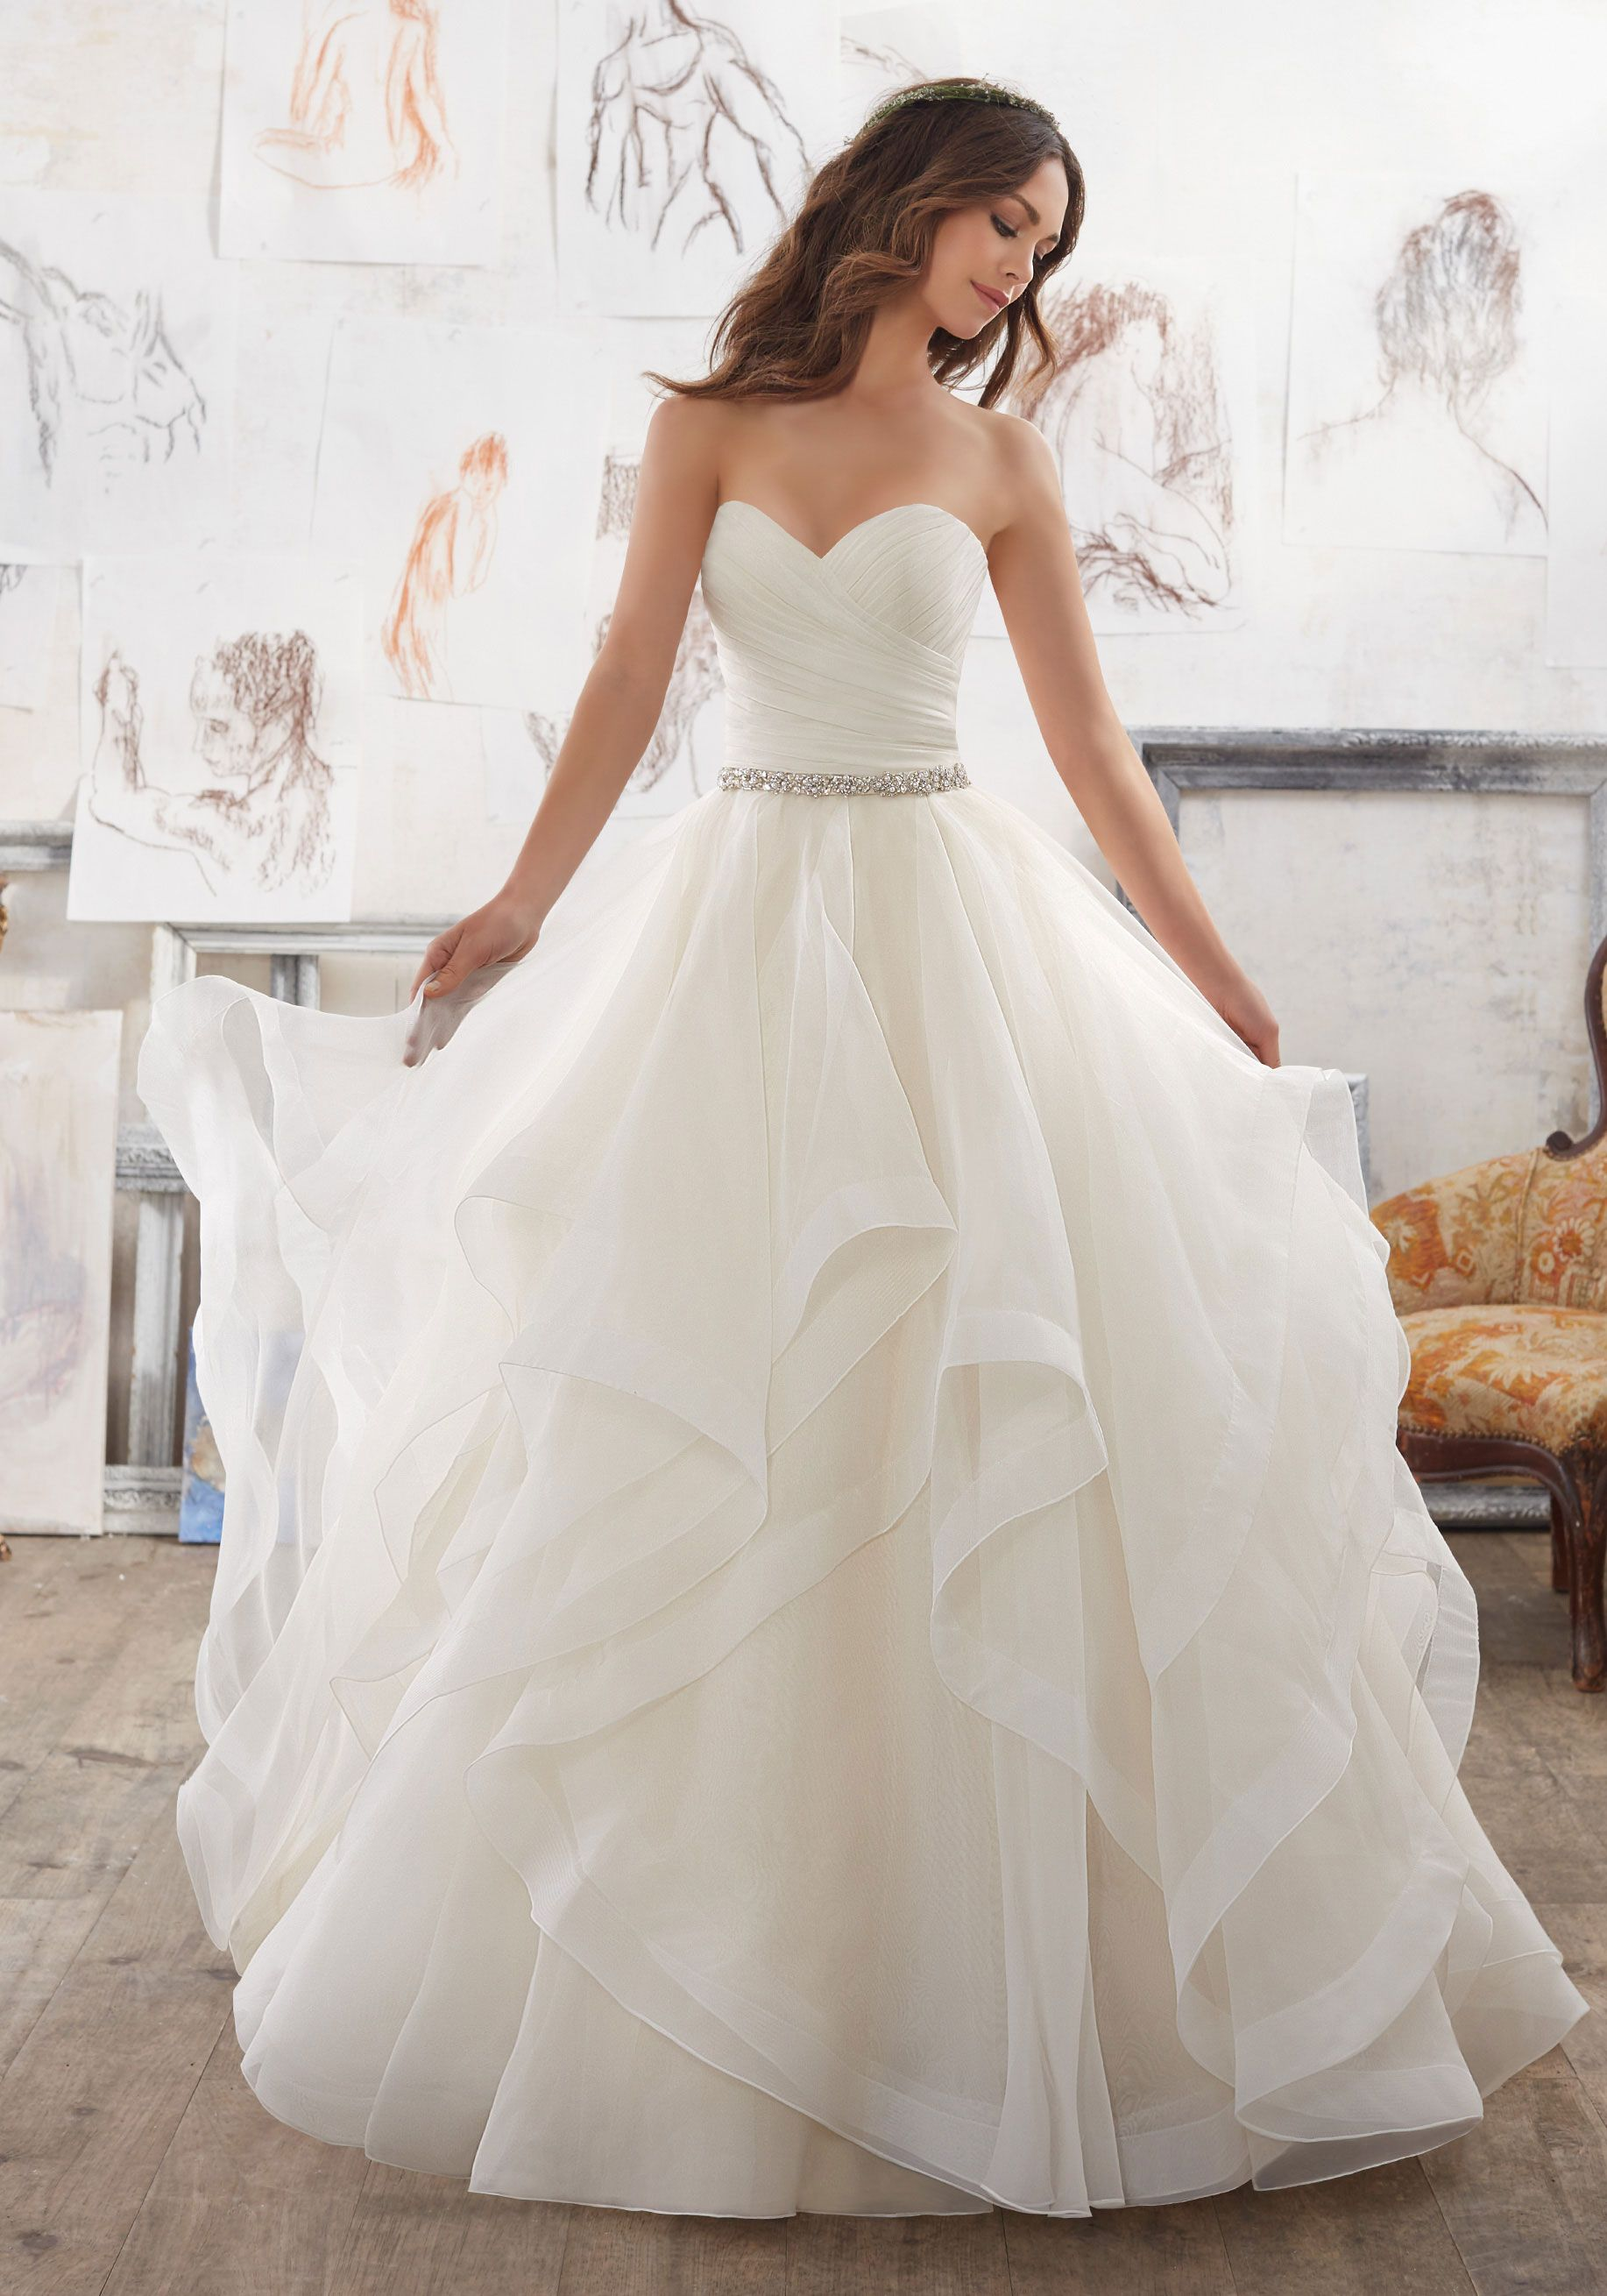 wedding dress by adrianna papell platinum houseofwubrands